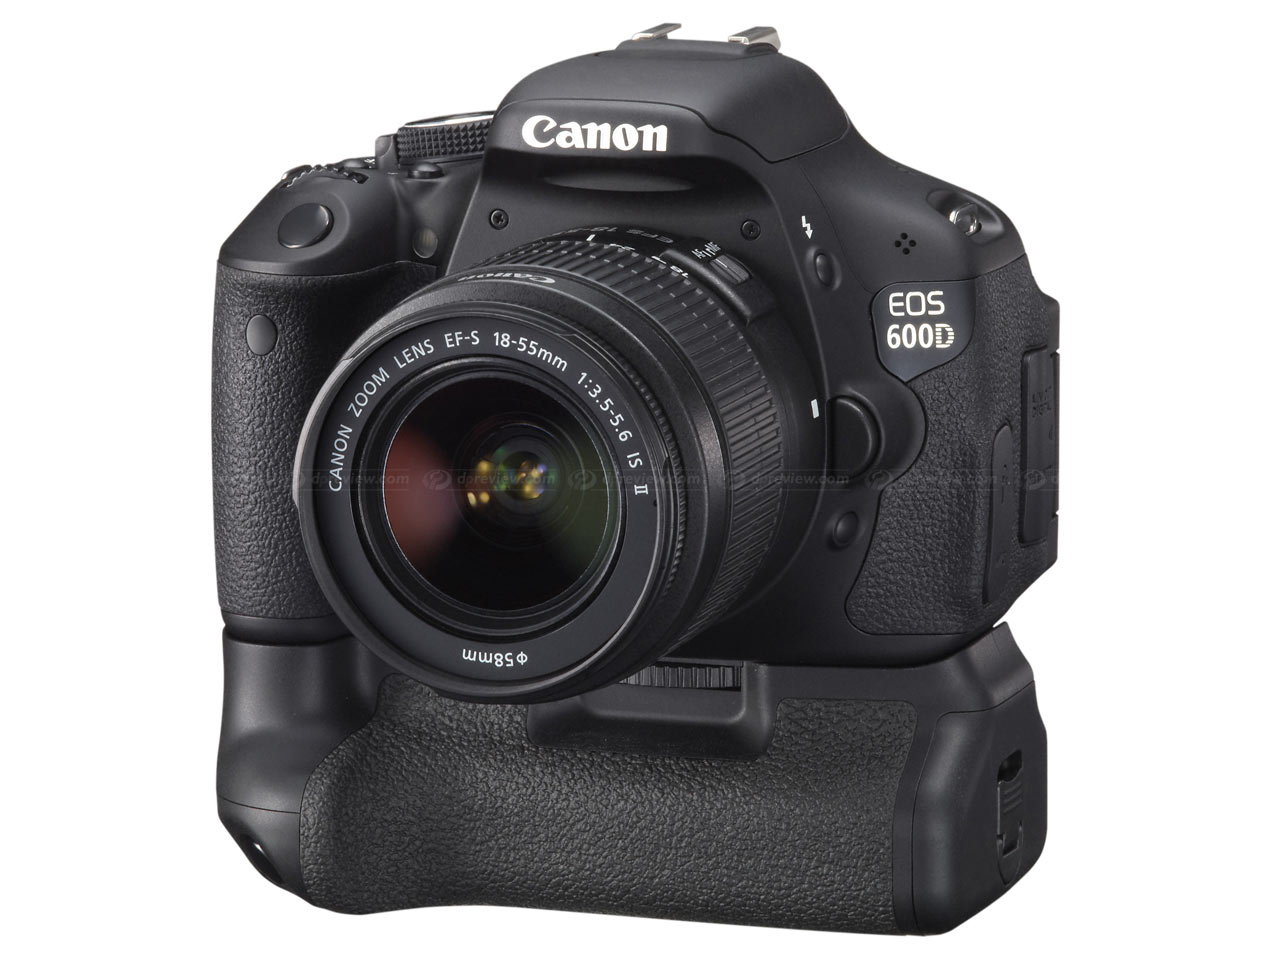 Exciting Eos 600d Fsl W Ef S 18 55mm Is Ii W Battery Grip Canon T3i Unboxing Review Canon Rebel T3i Review 2016 dpreview Canon T3i Review